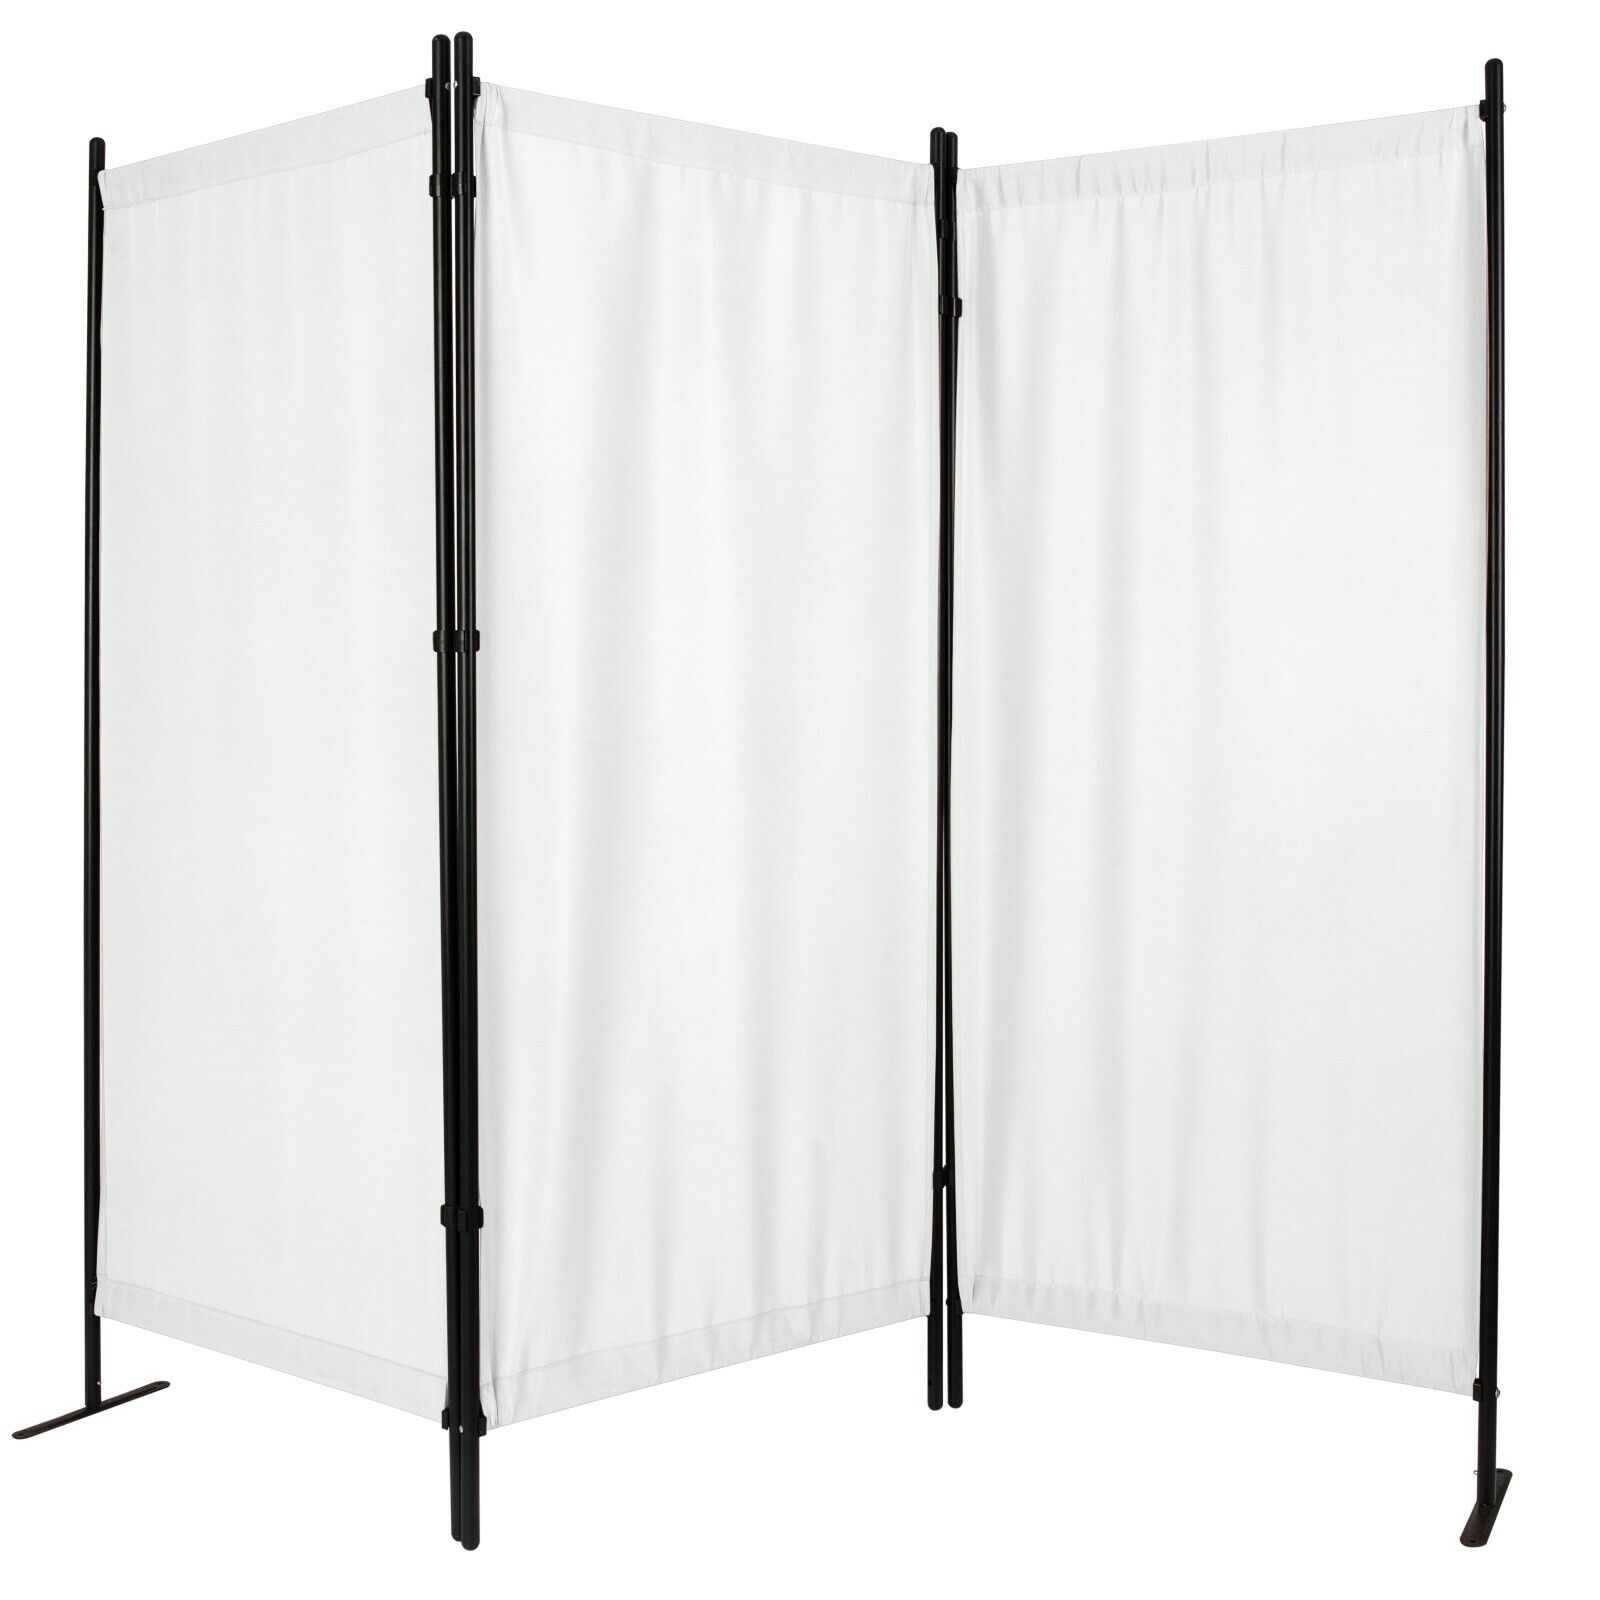 3 Panel Folding Room Dividers Privacy Screen Home School Off